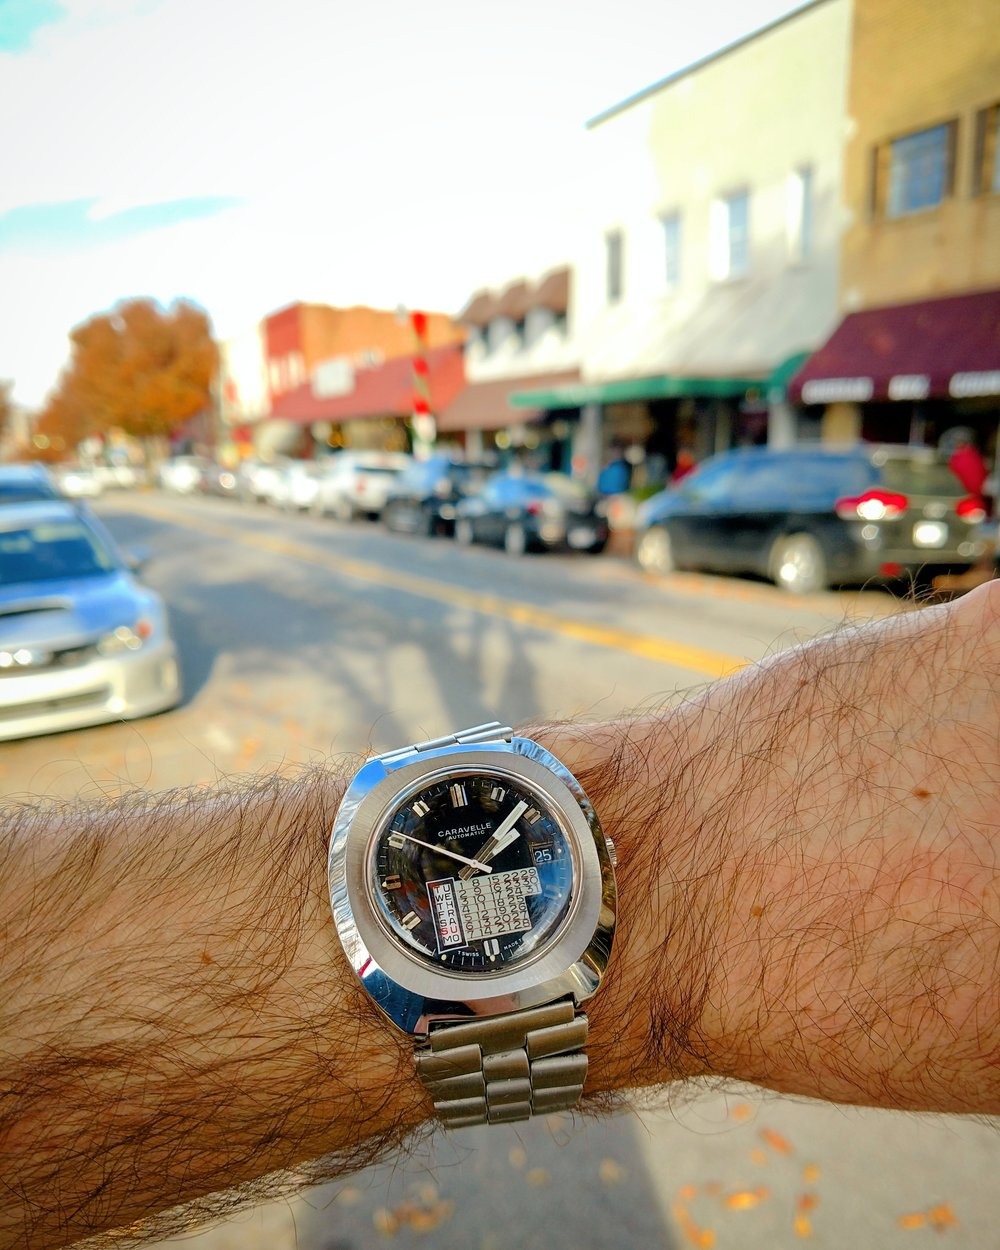 1974 Caravelle Perpetual Calendar in downtown Waynesville  Waynesville, Blue Ridge Mountains, North Carolina